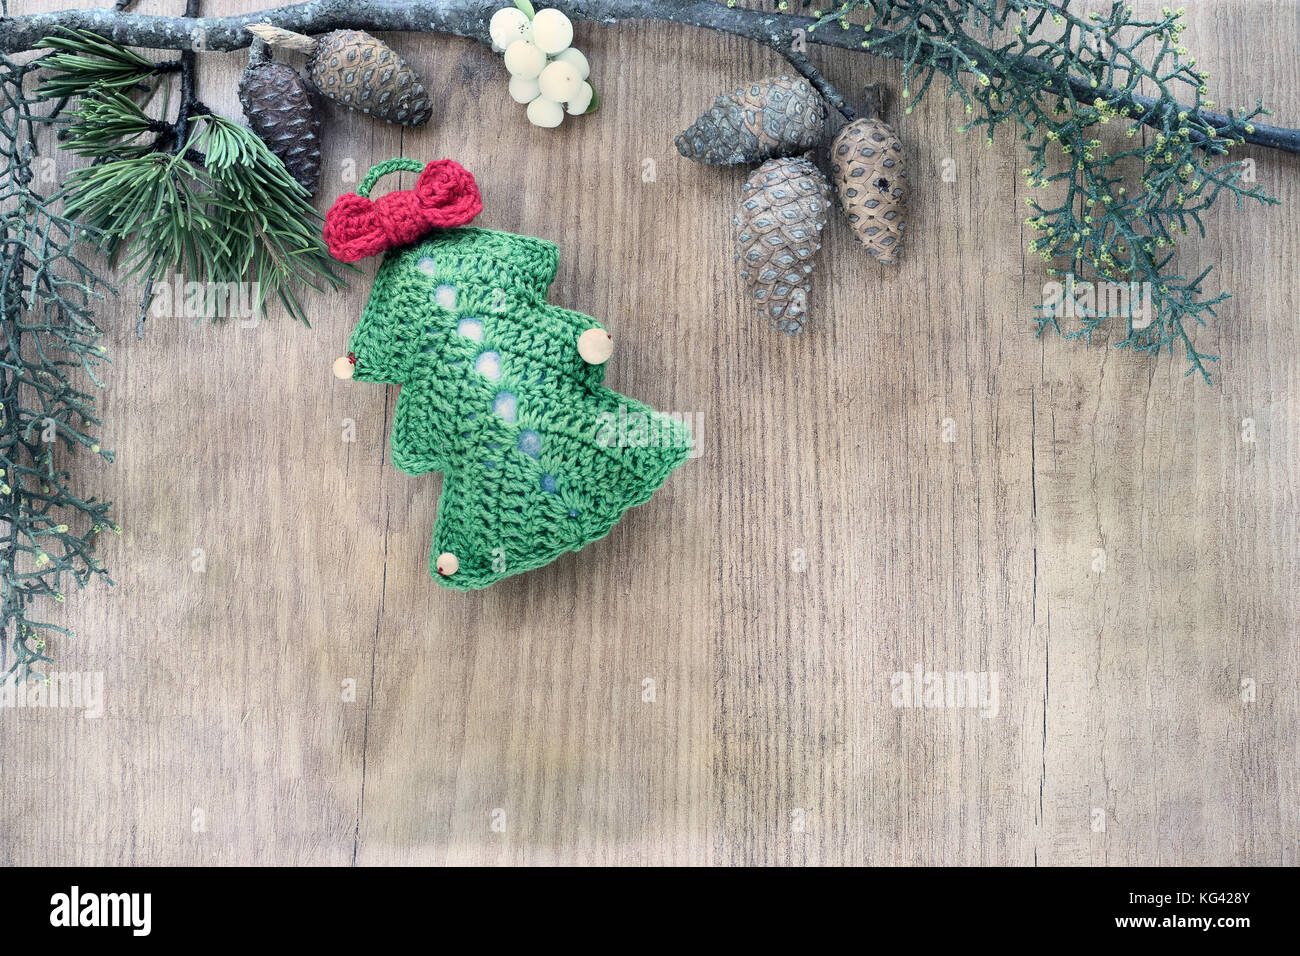 Christmas Ornaments Made In Crochet On Rustic Wooden Background Stock Photo Alamy